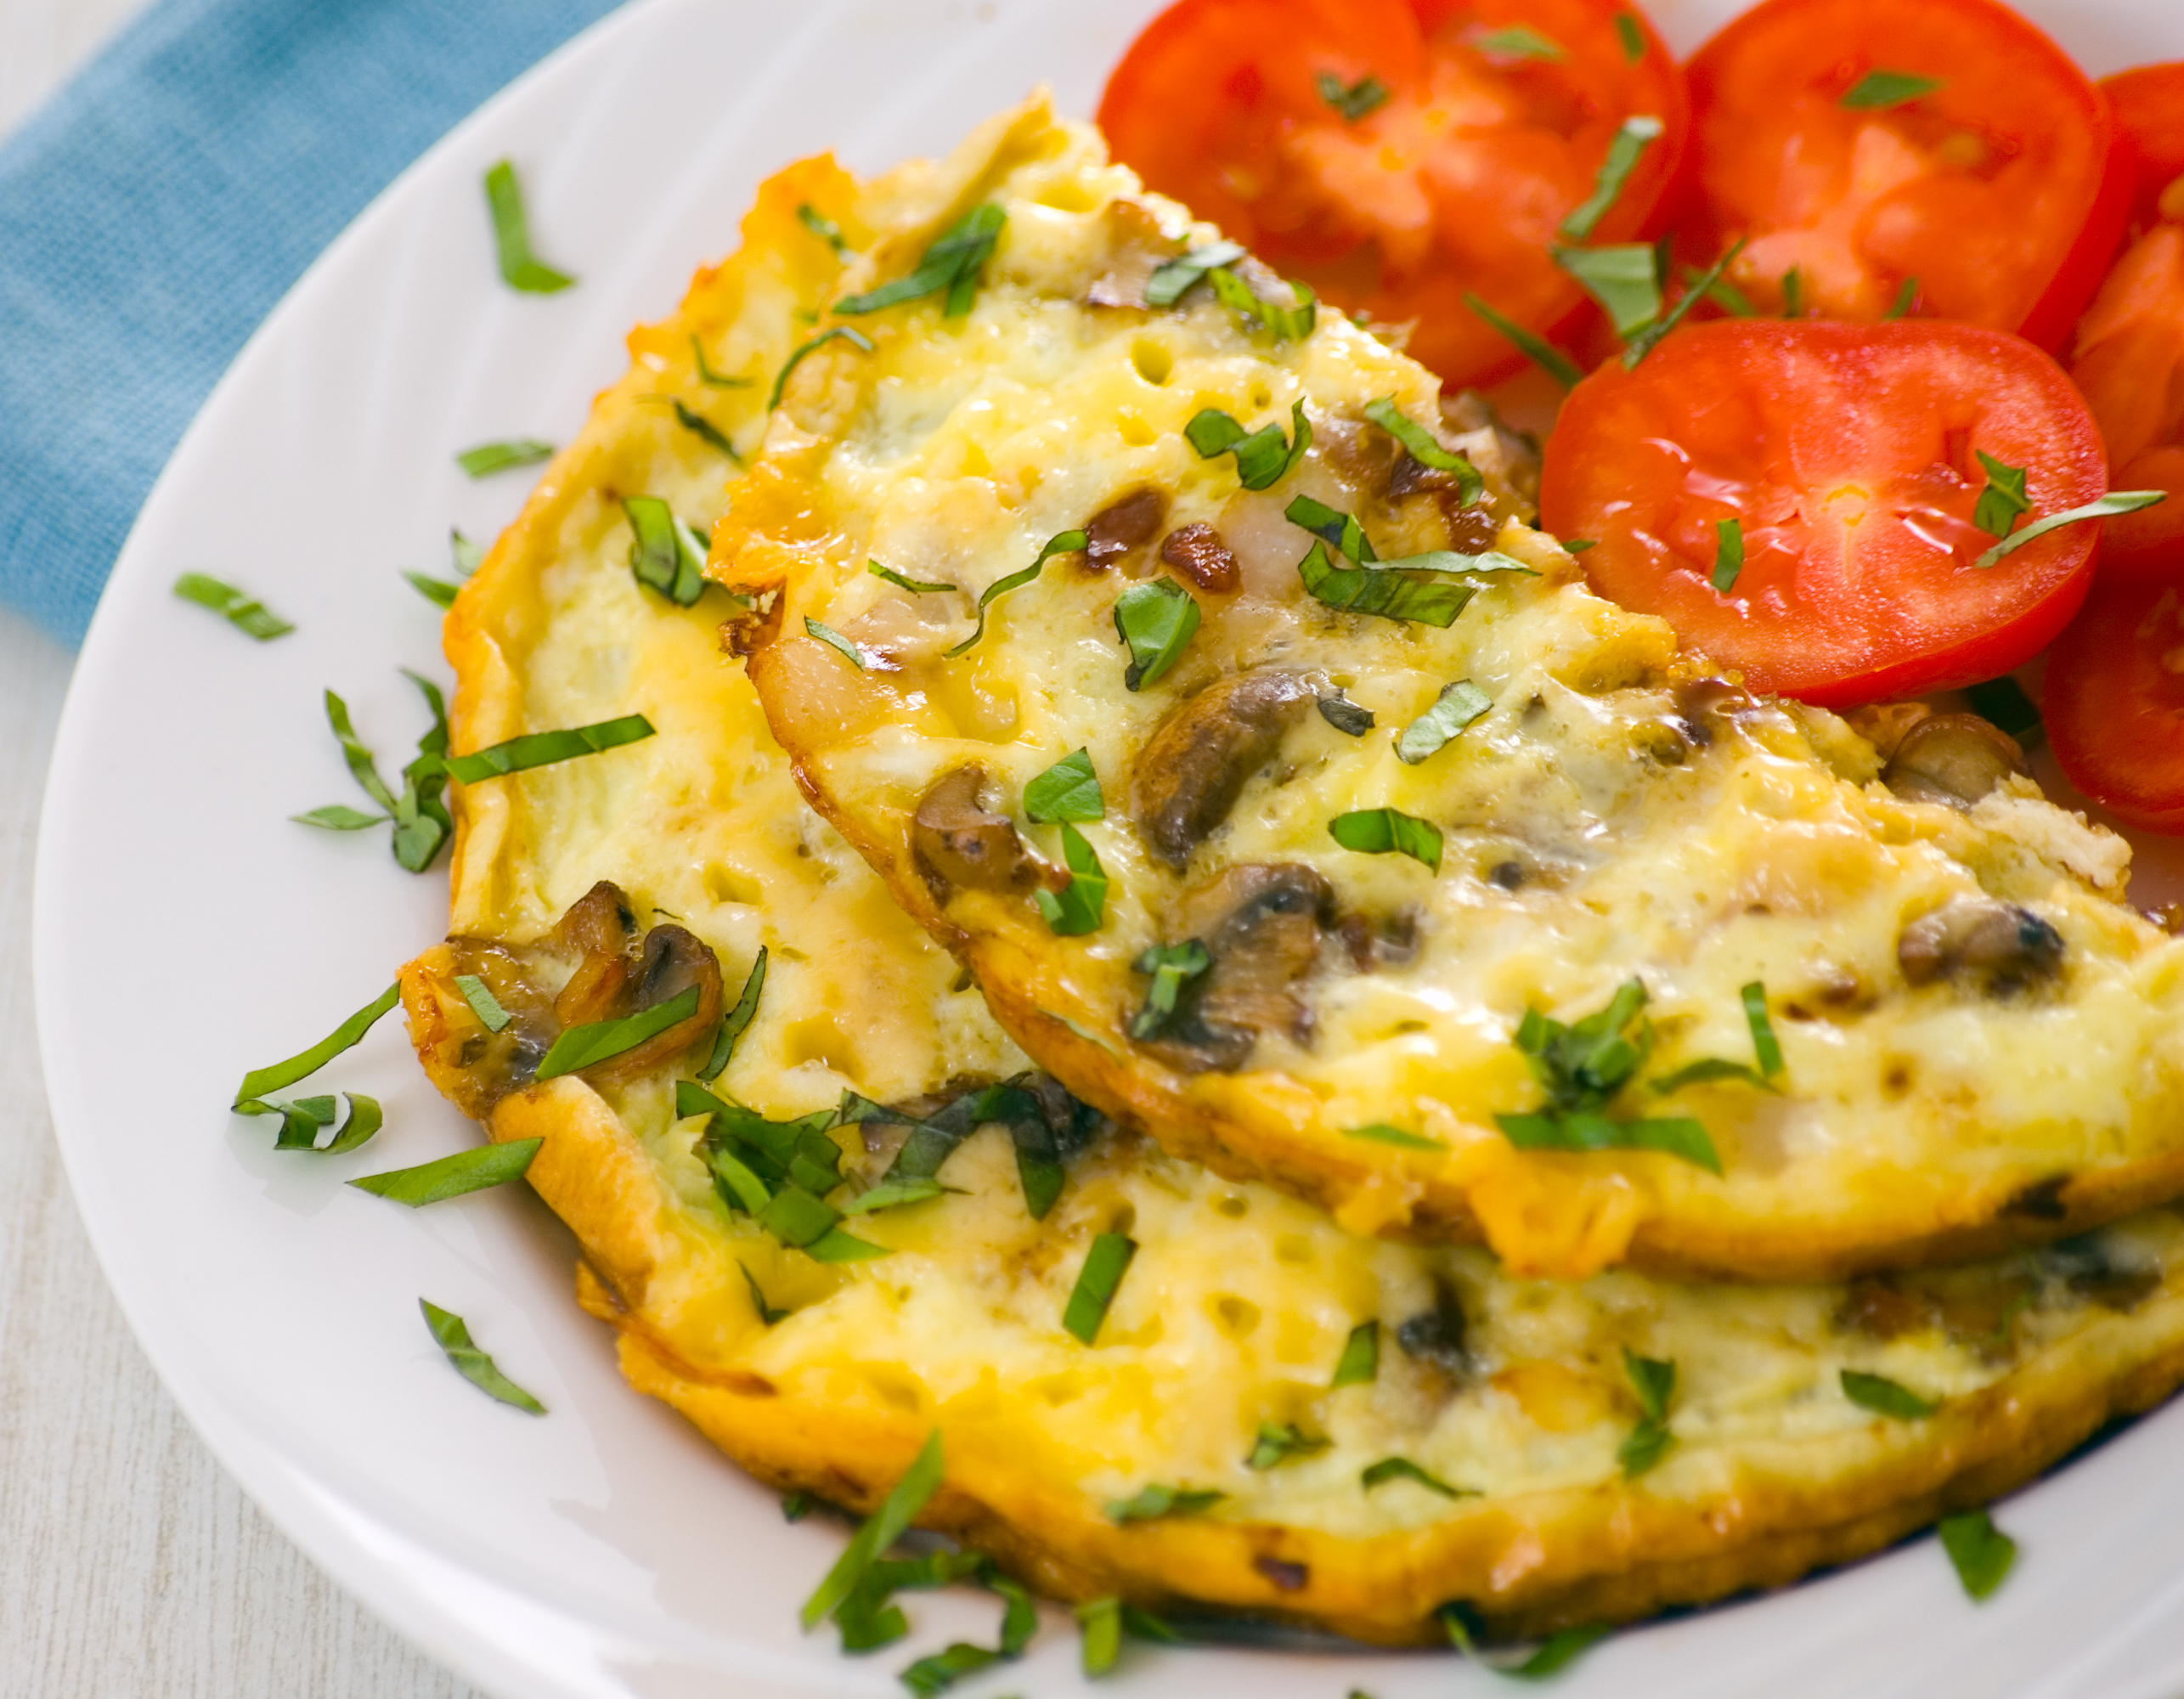 Omelet served with tomato